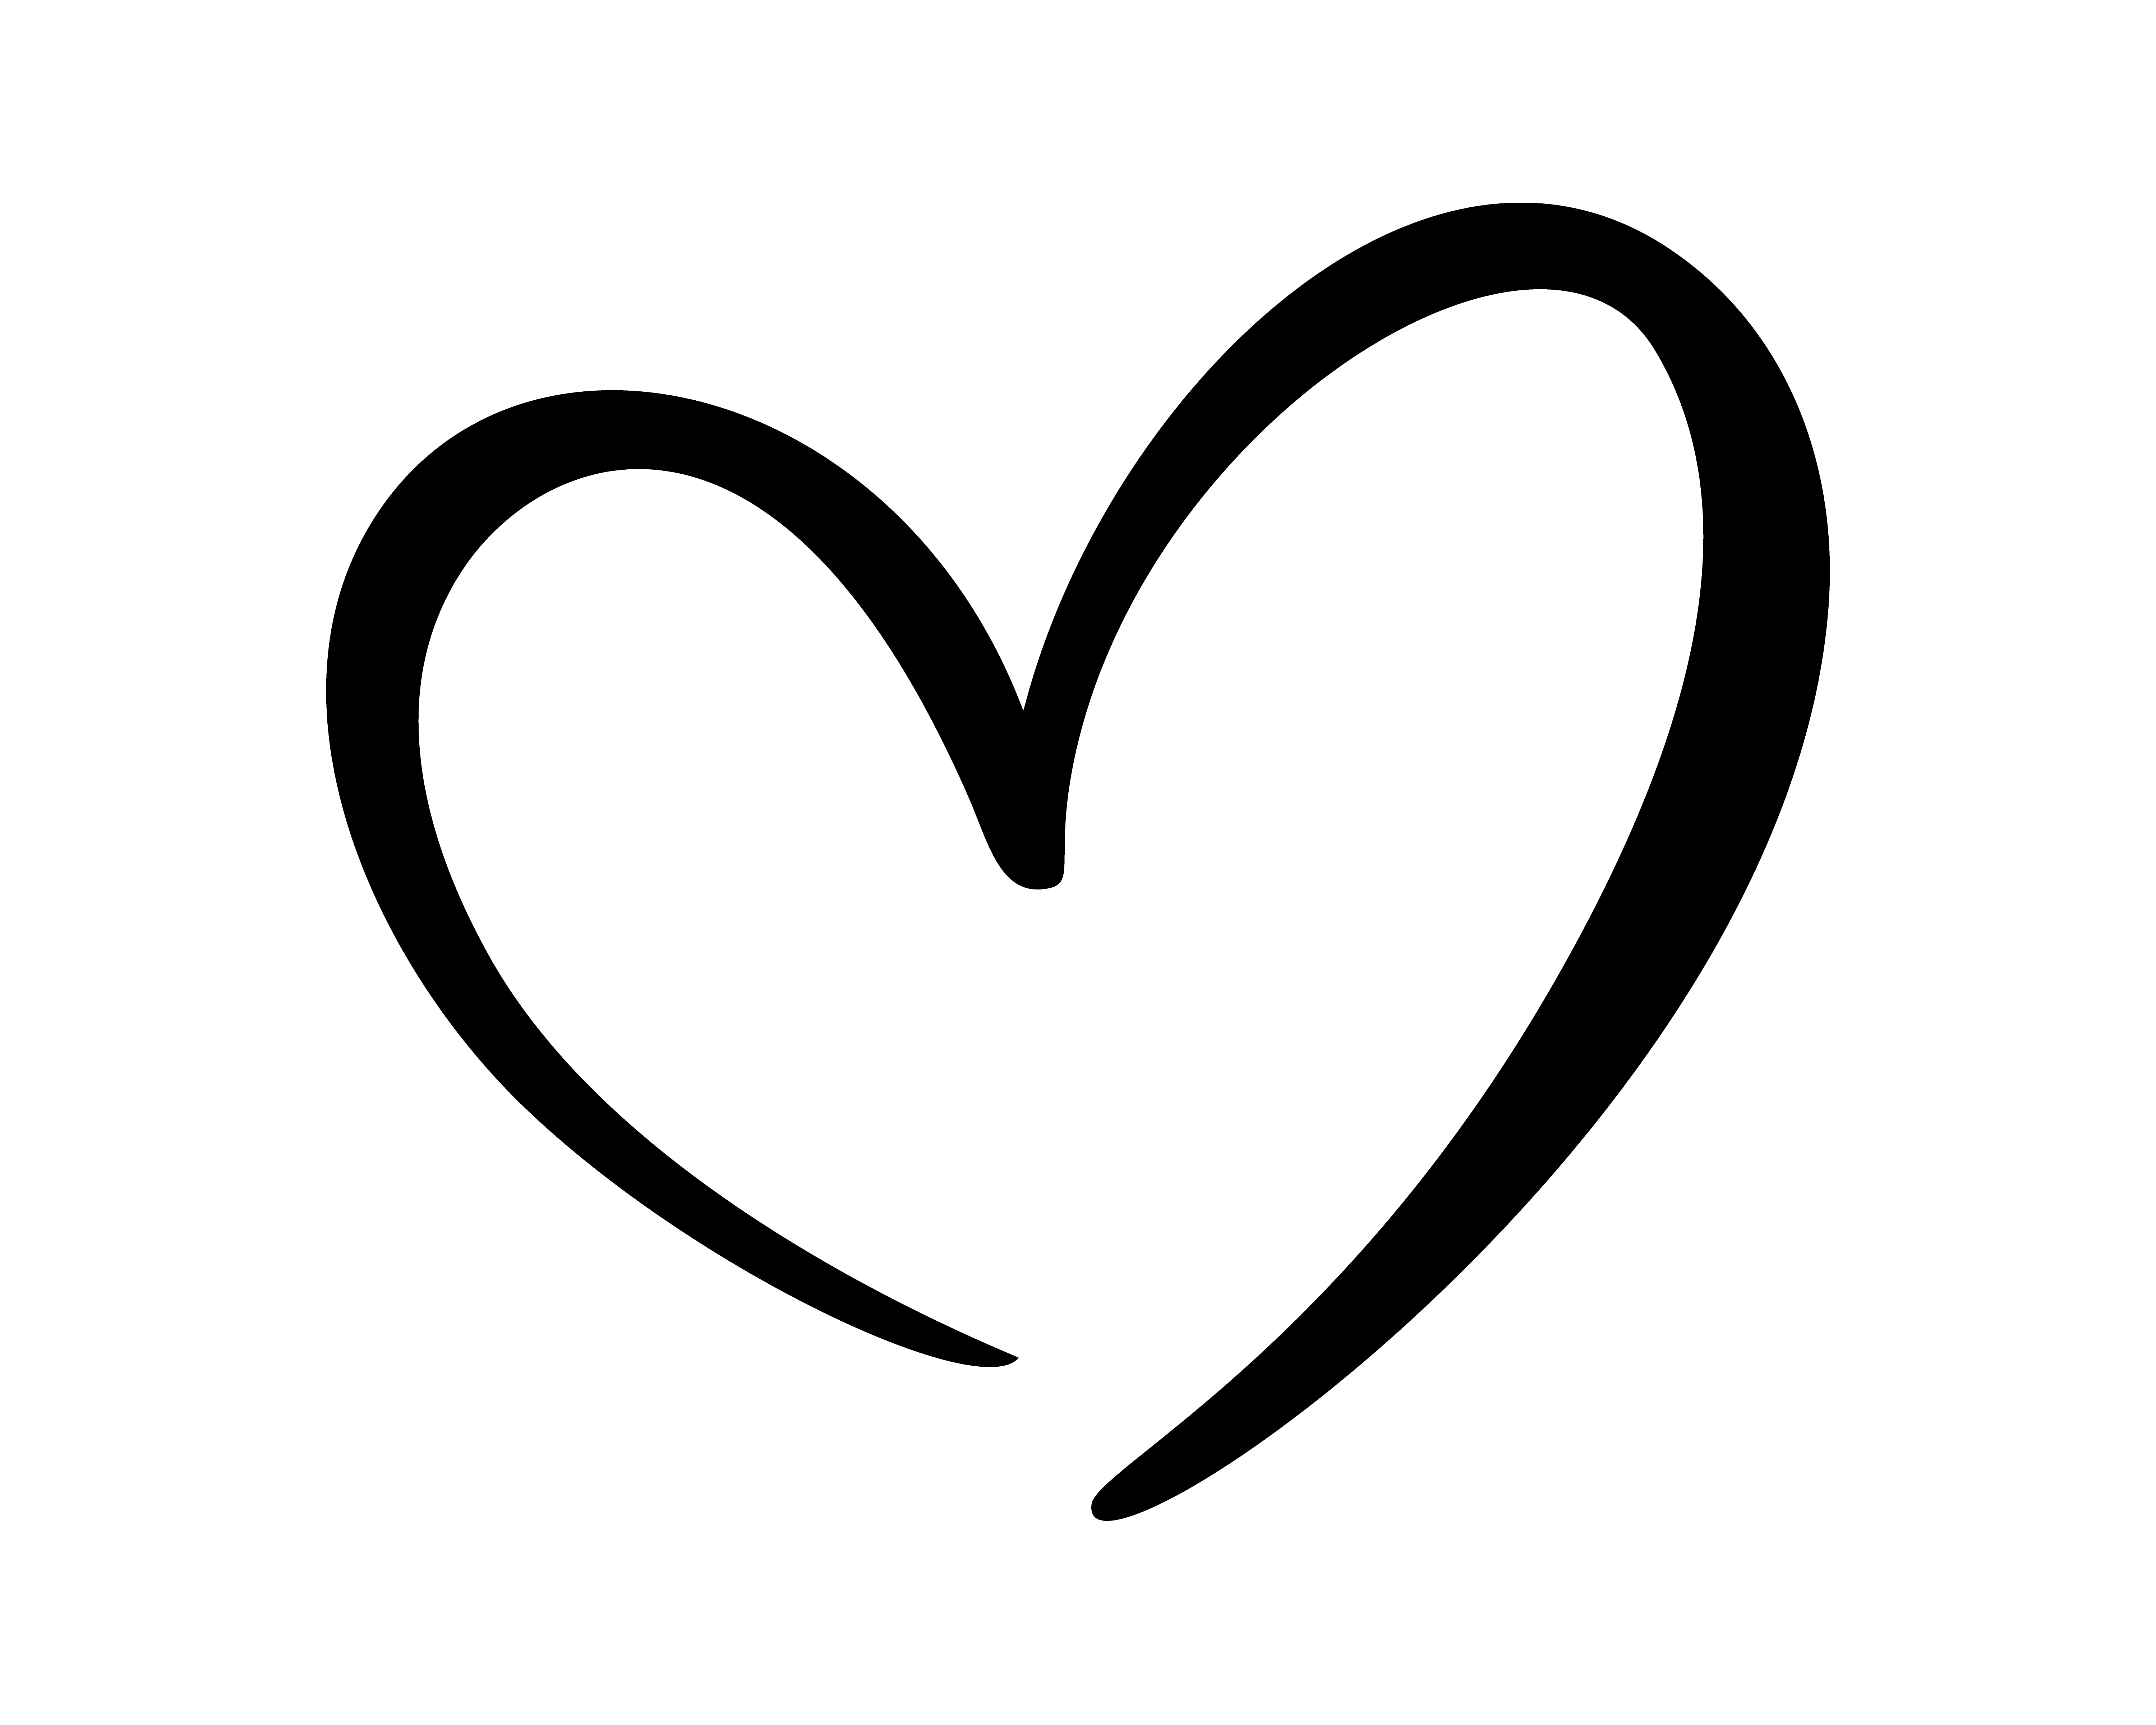 Heartbeat Line Drawing: Calligraphic Love Heart Sign